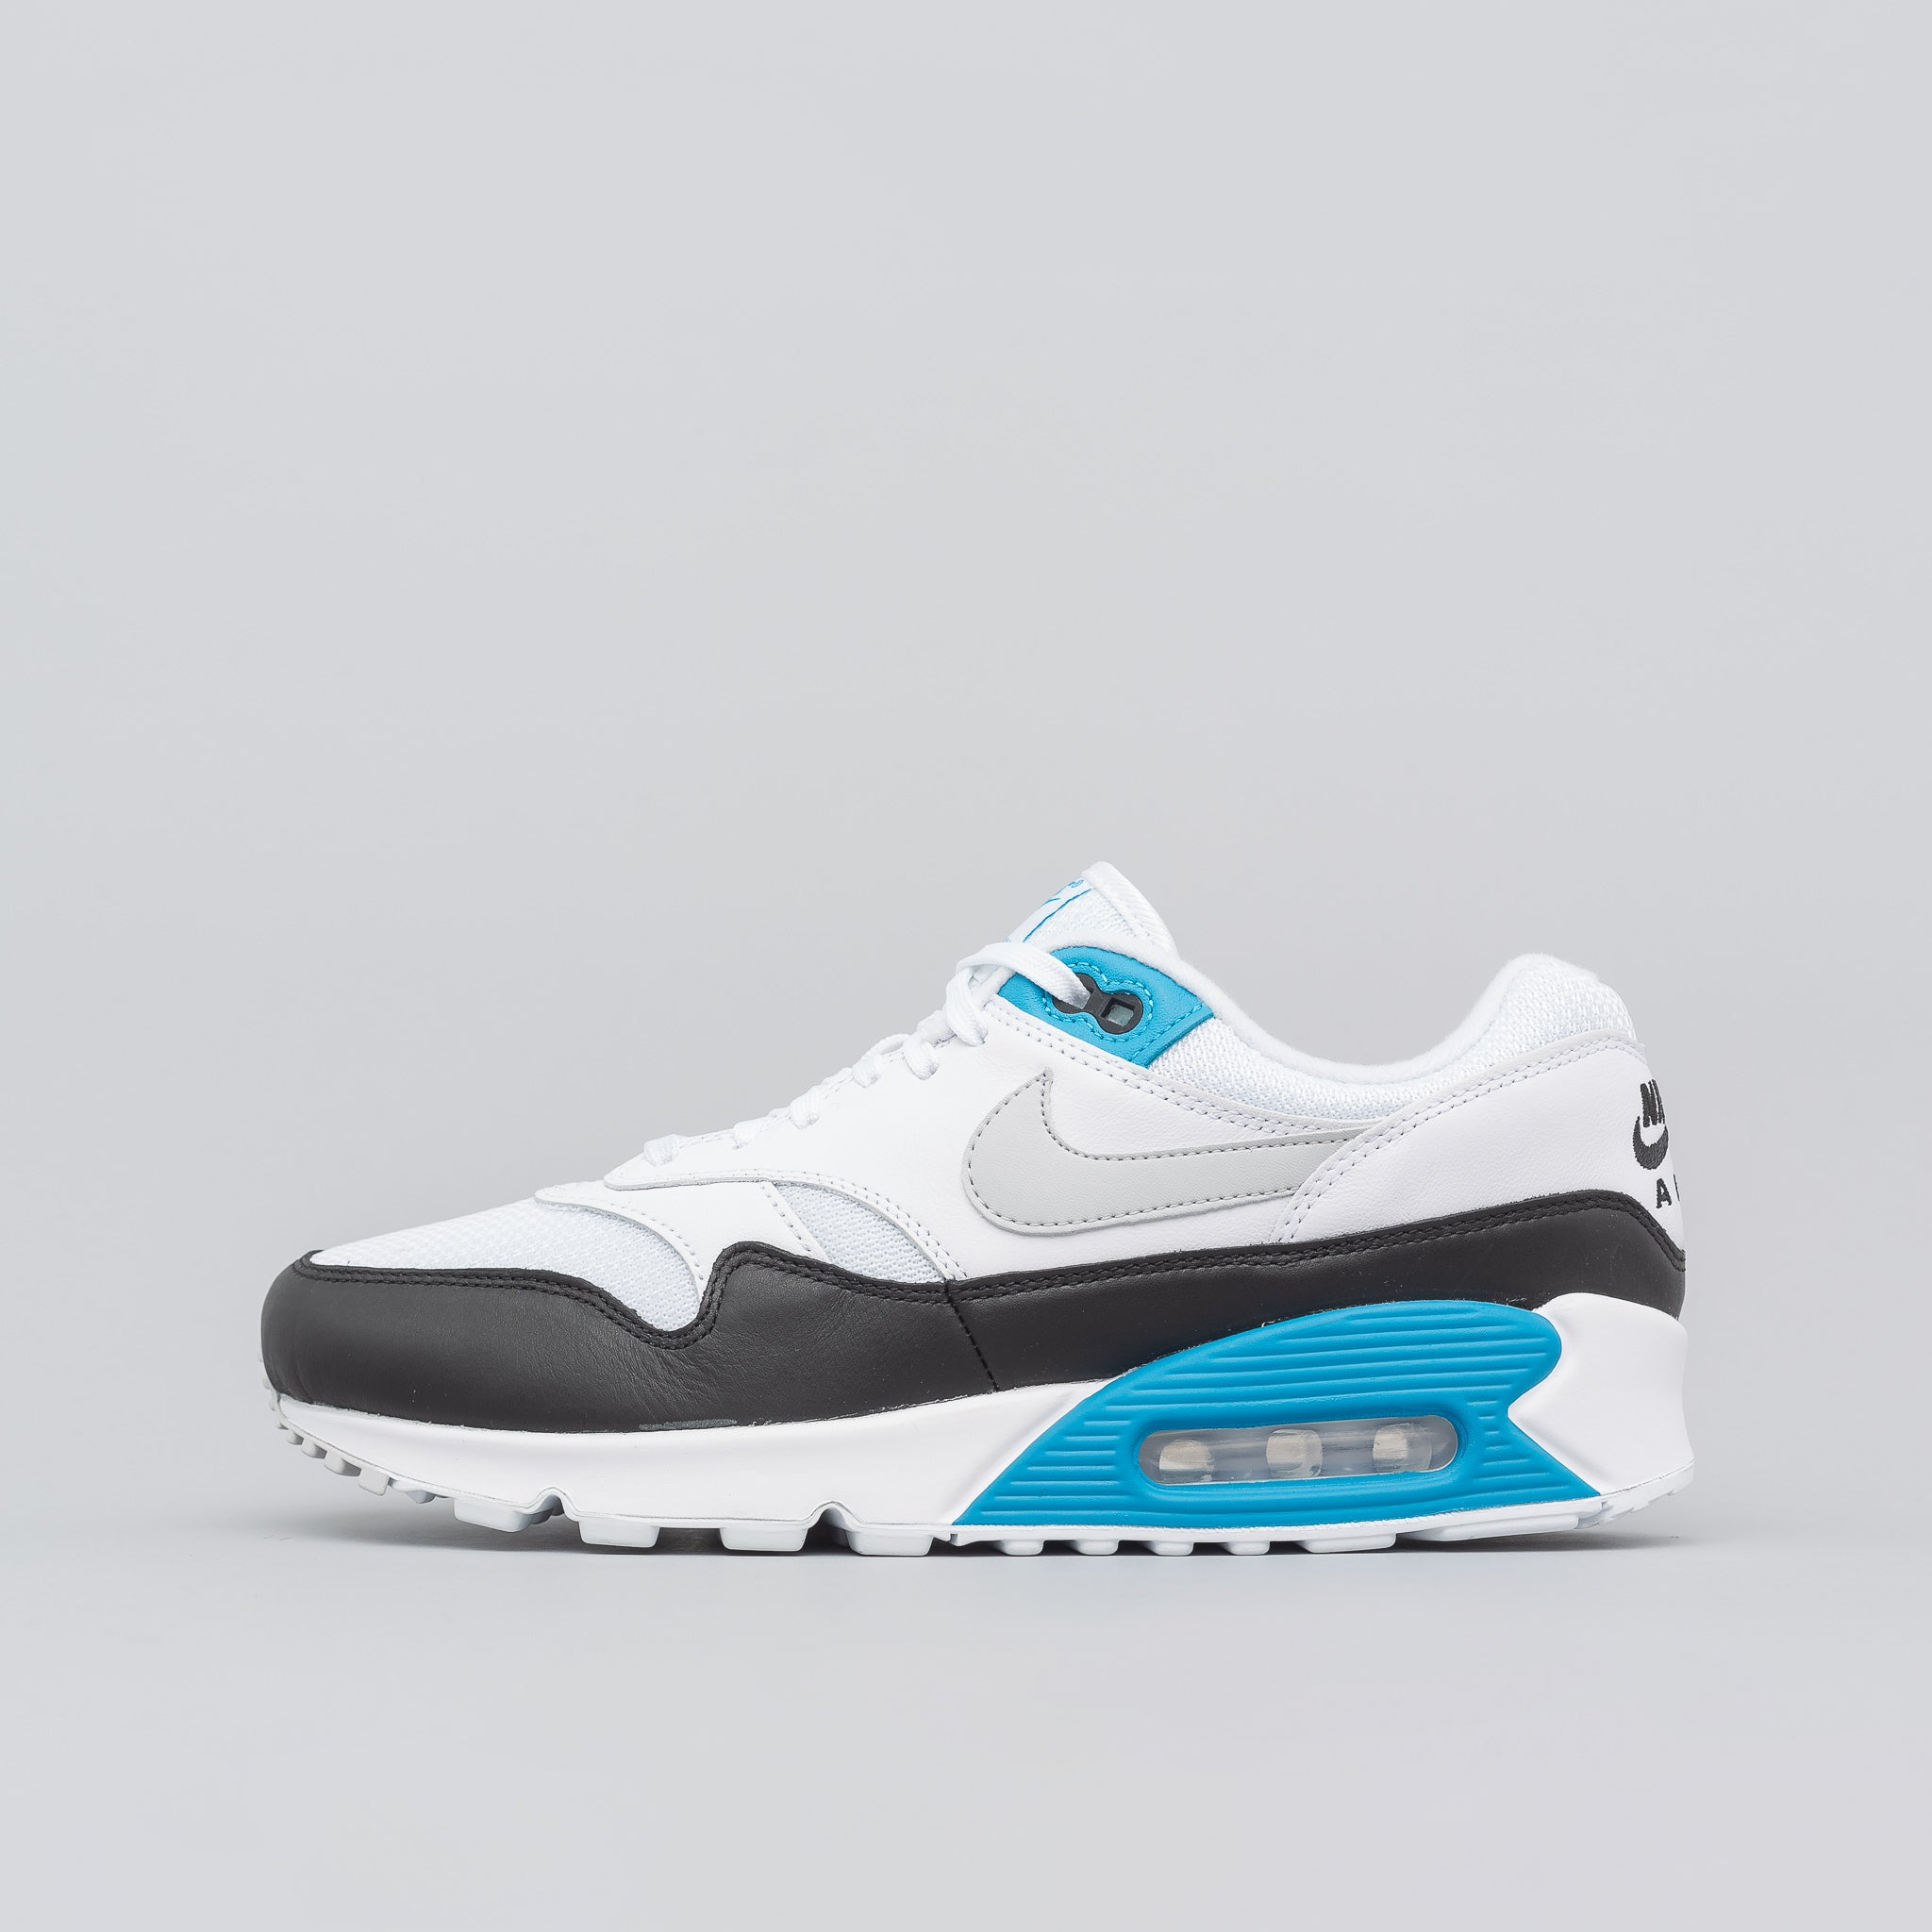 Air Max 90/1 in White/Grey